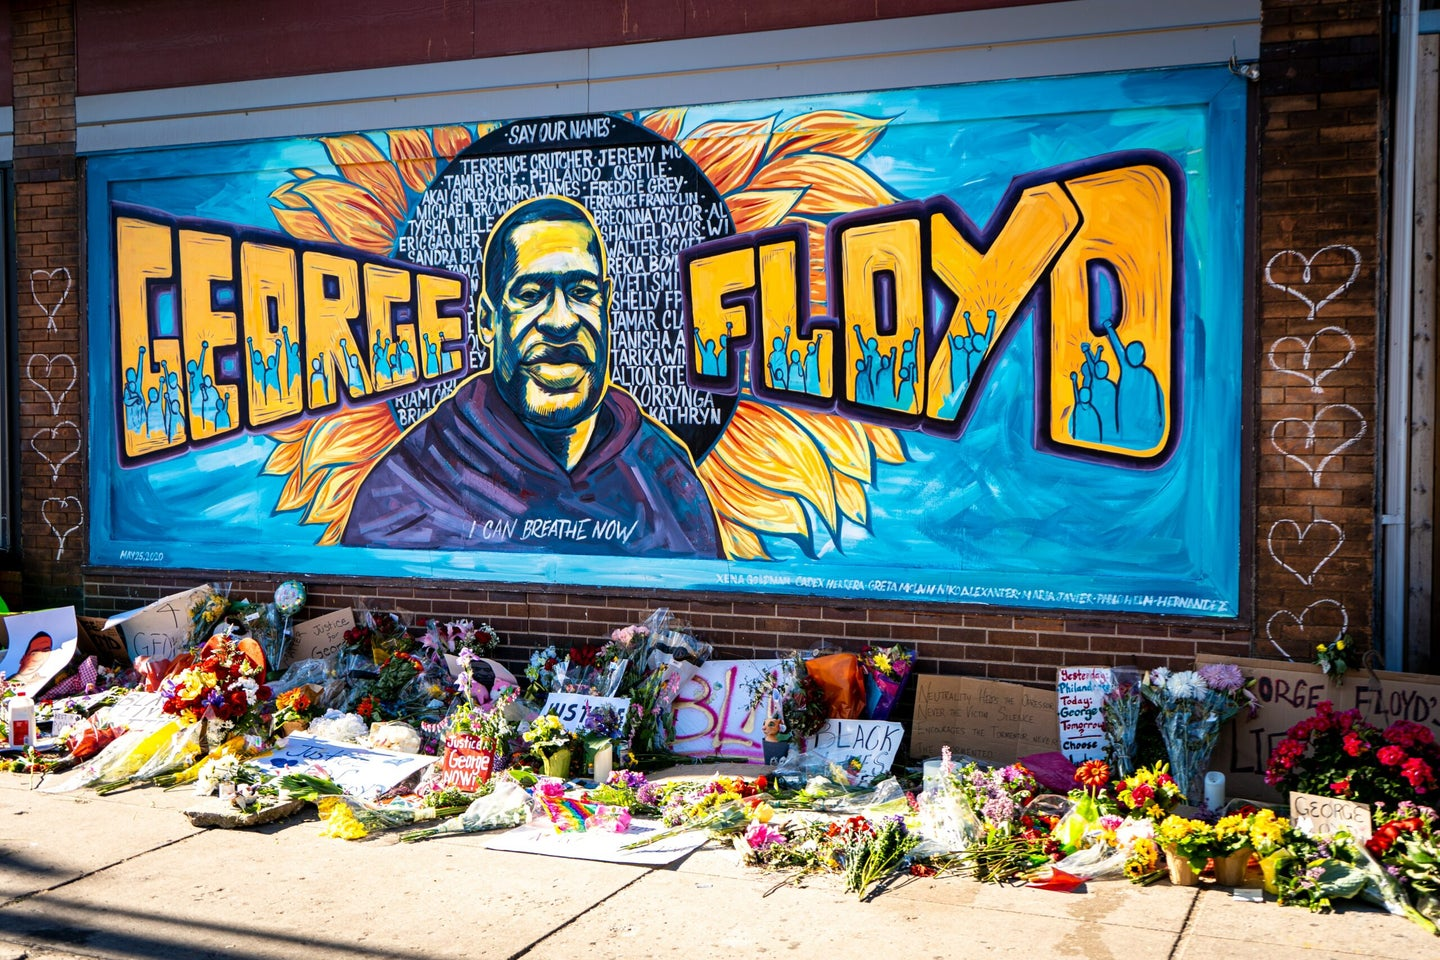 A mural in Minneapolis, Minnesota, commemorates George Floyd, who was killed while being restrained by city police officers in May.